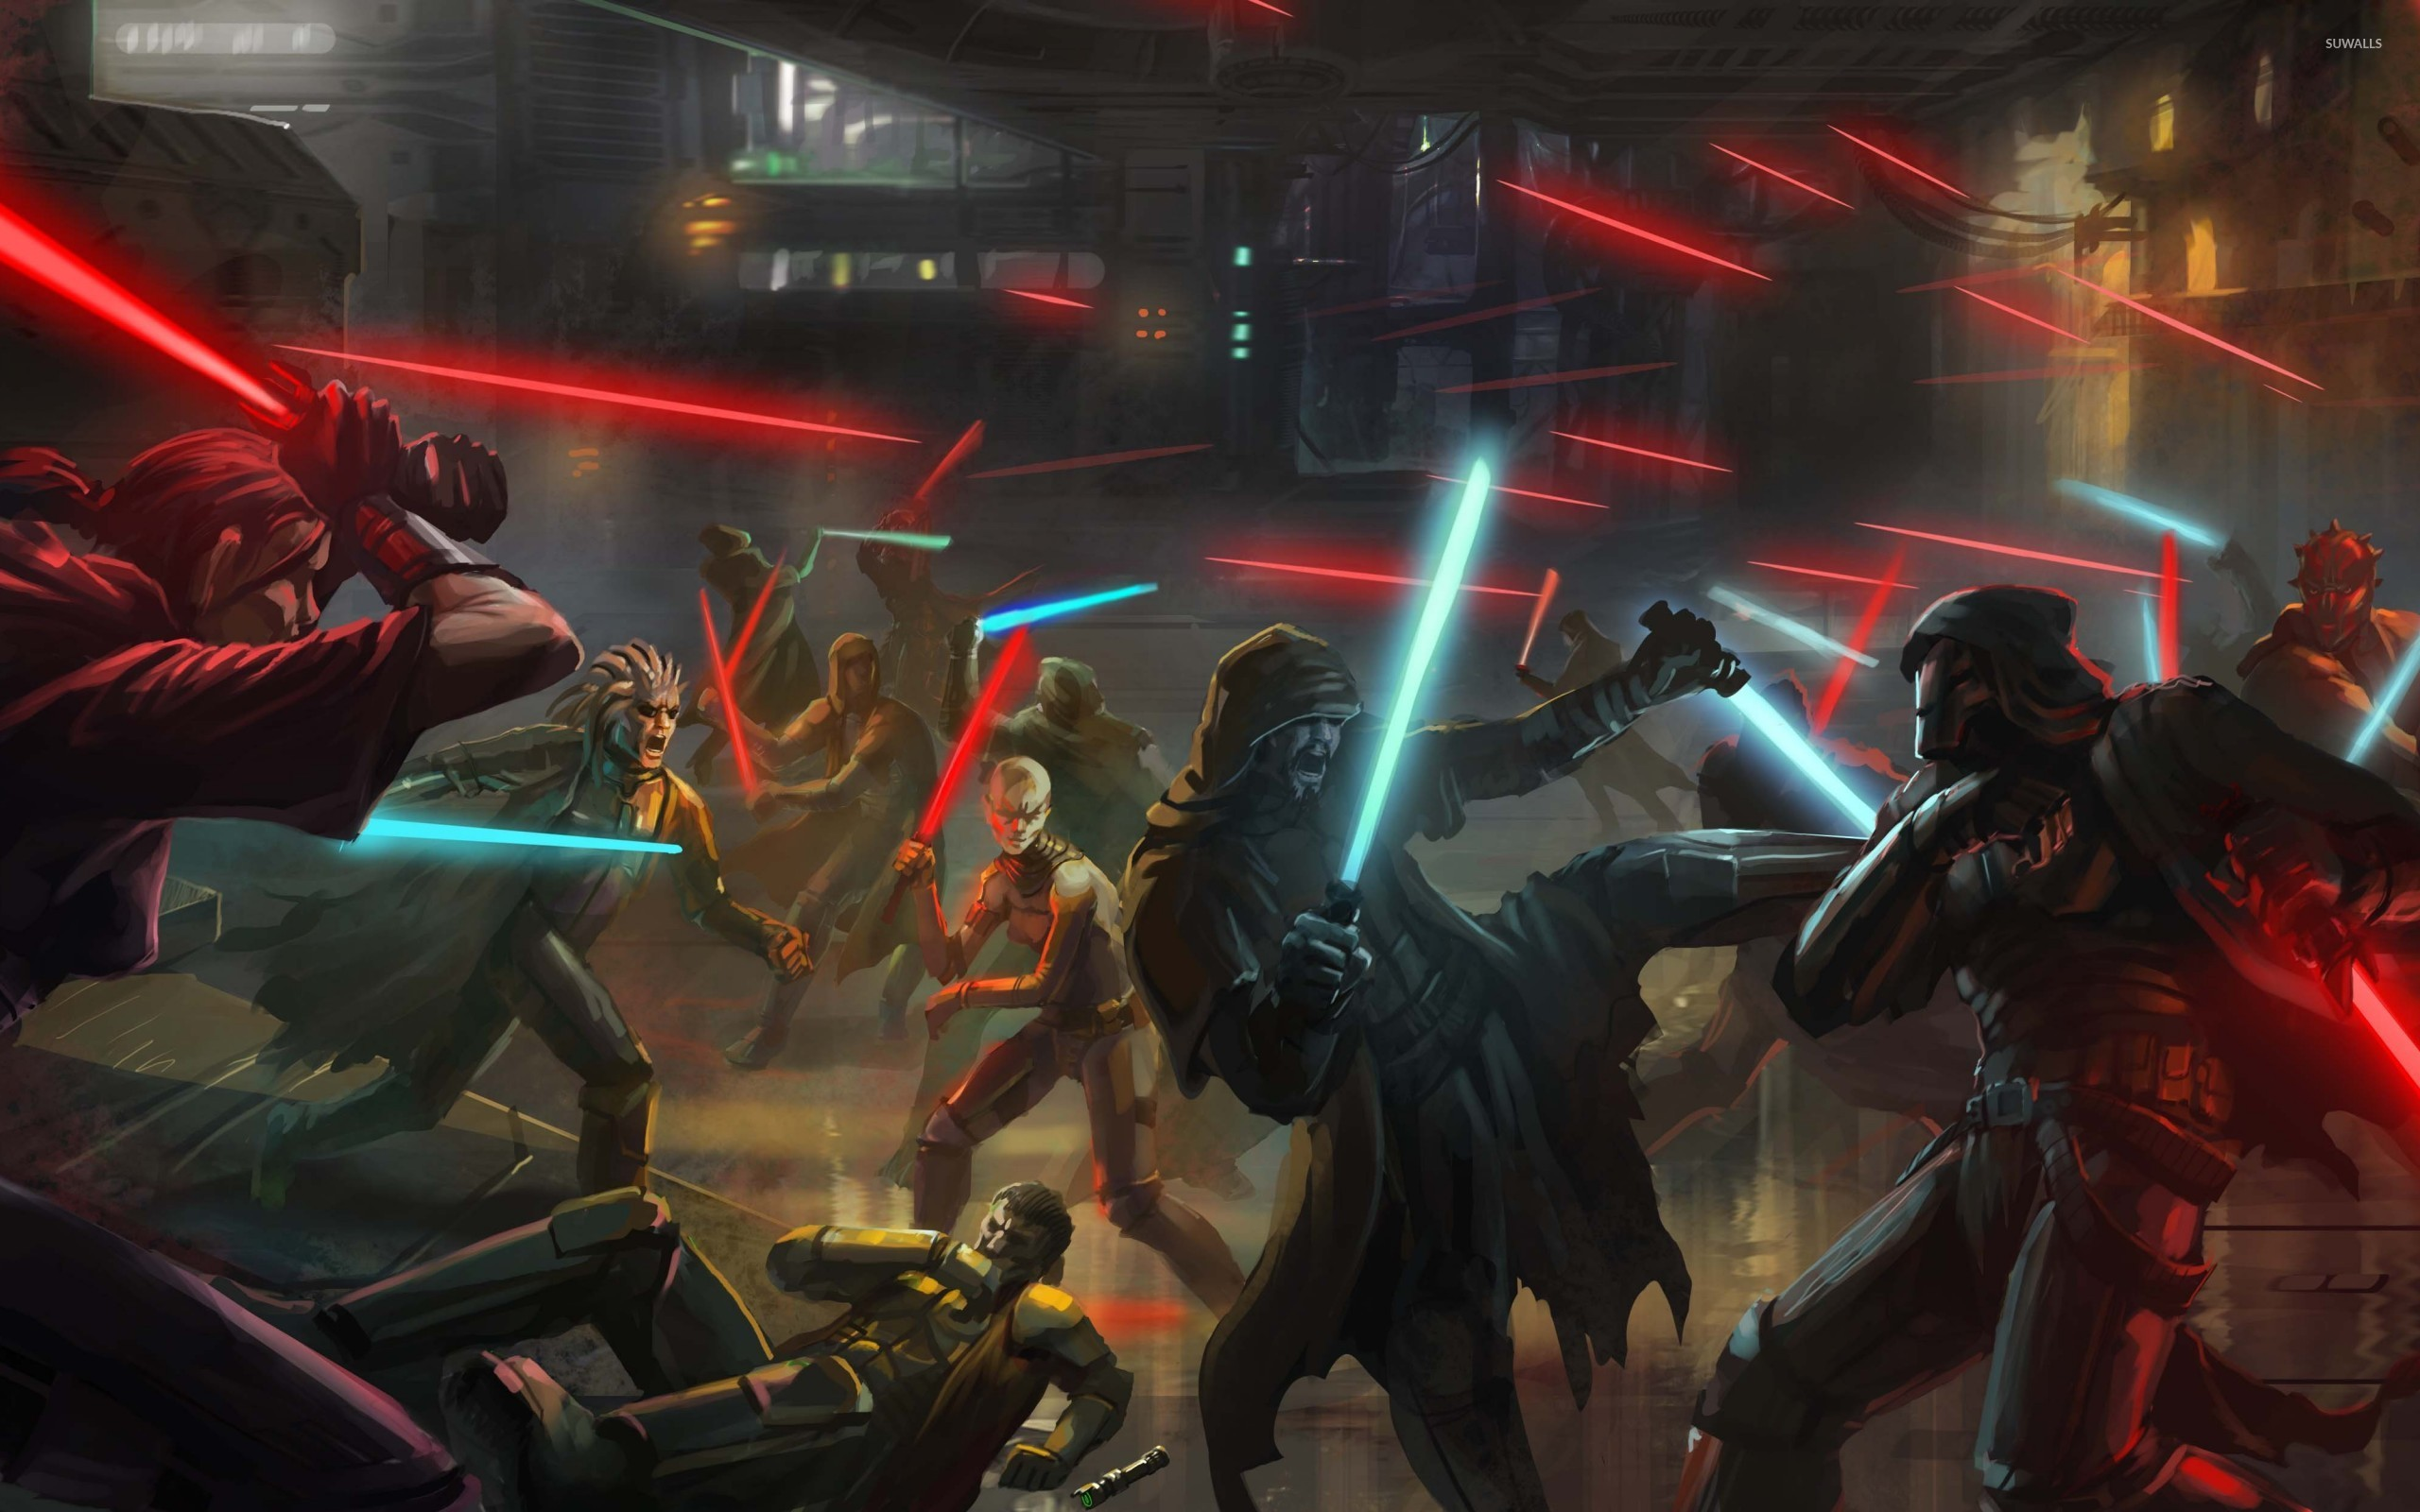 Star Wars The Old Republic Wallpaper Game Wallpapers 20231